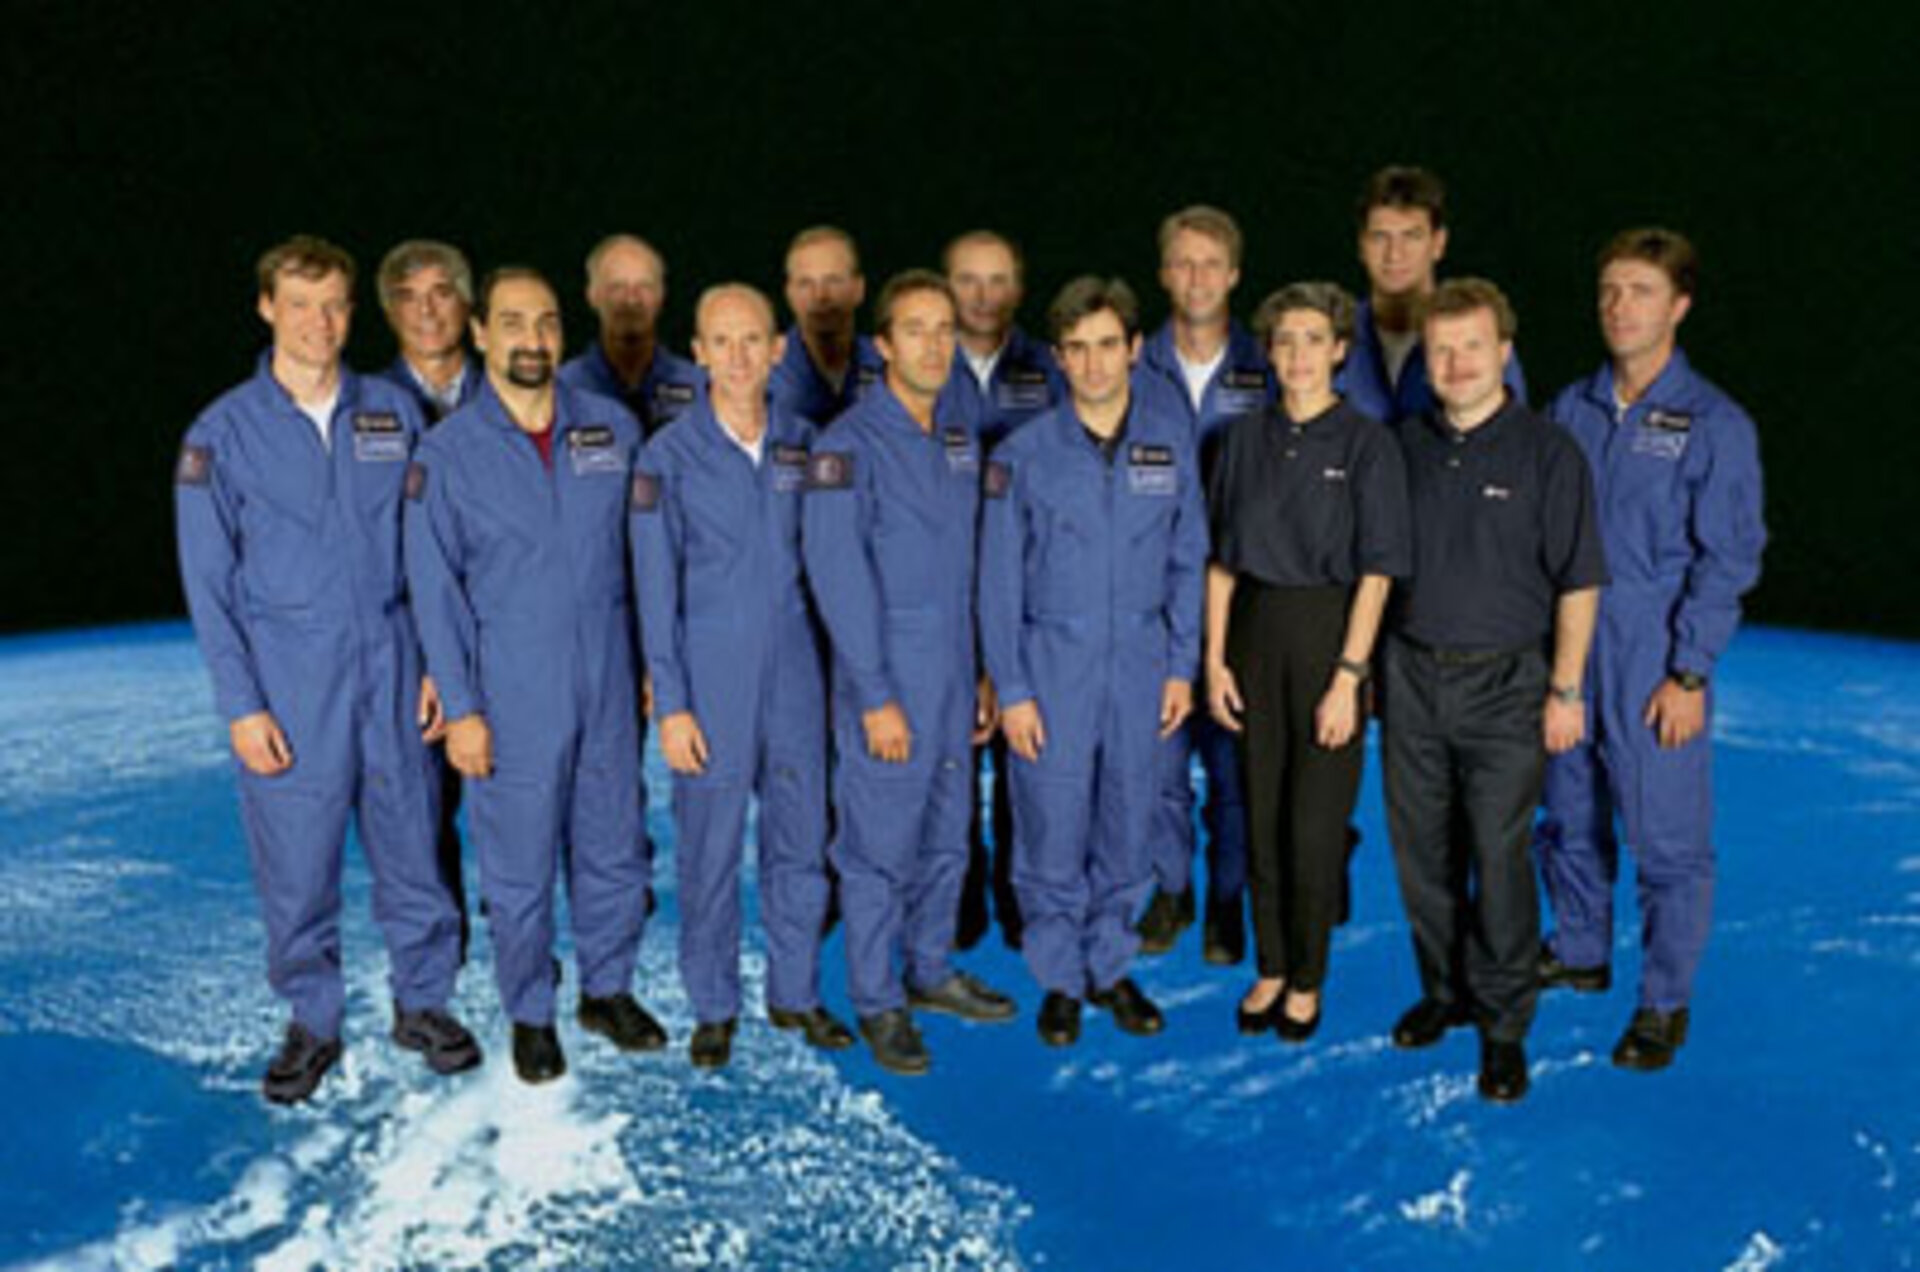 Astronauts of the European Space Agency (ESA)